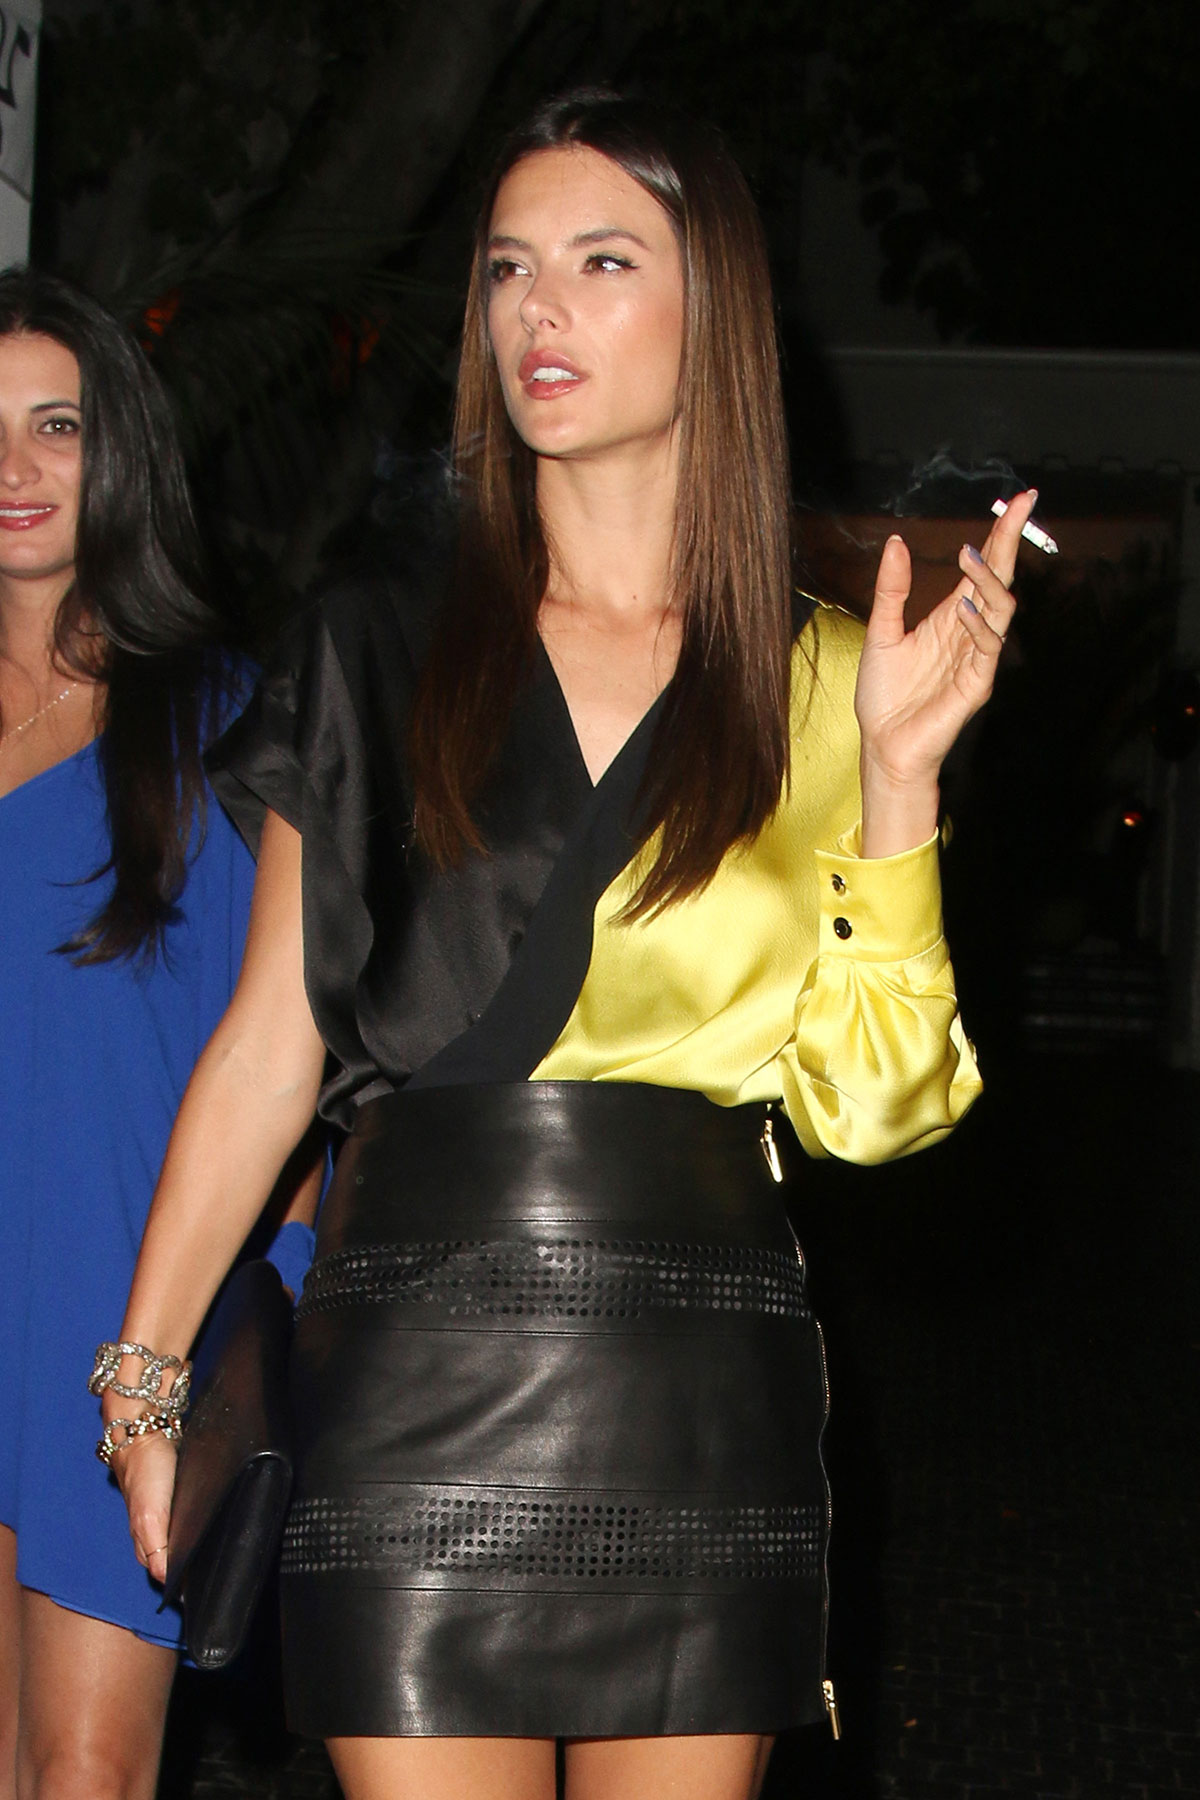 Alessandra Ambrosio walking stoned in The States